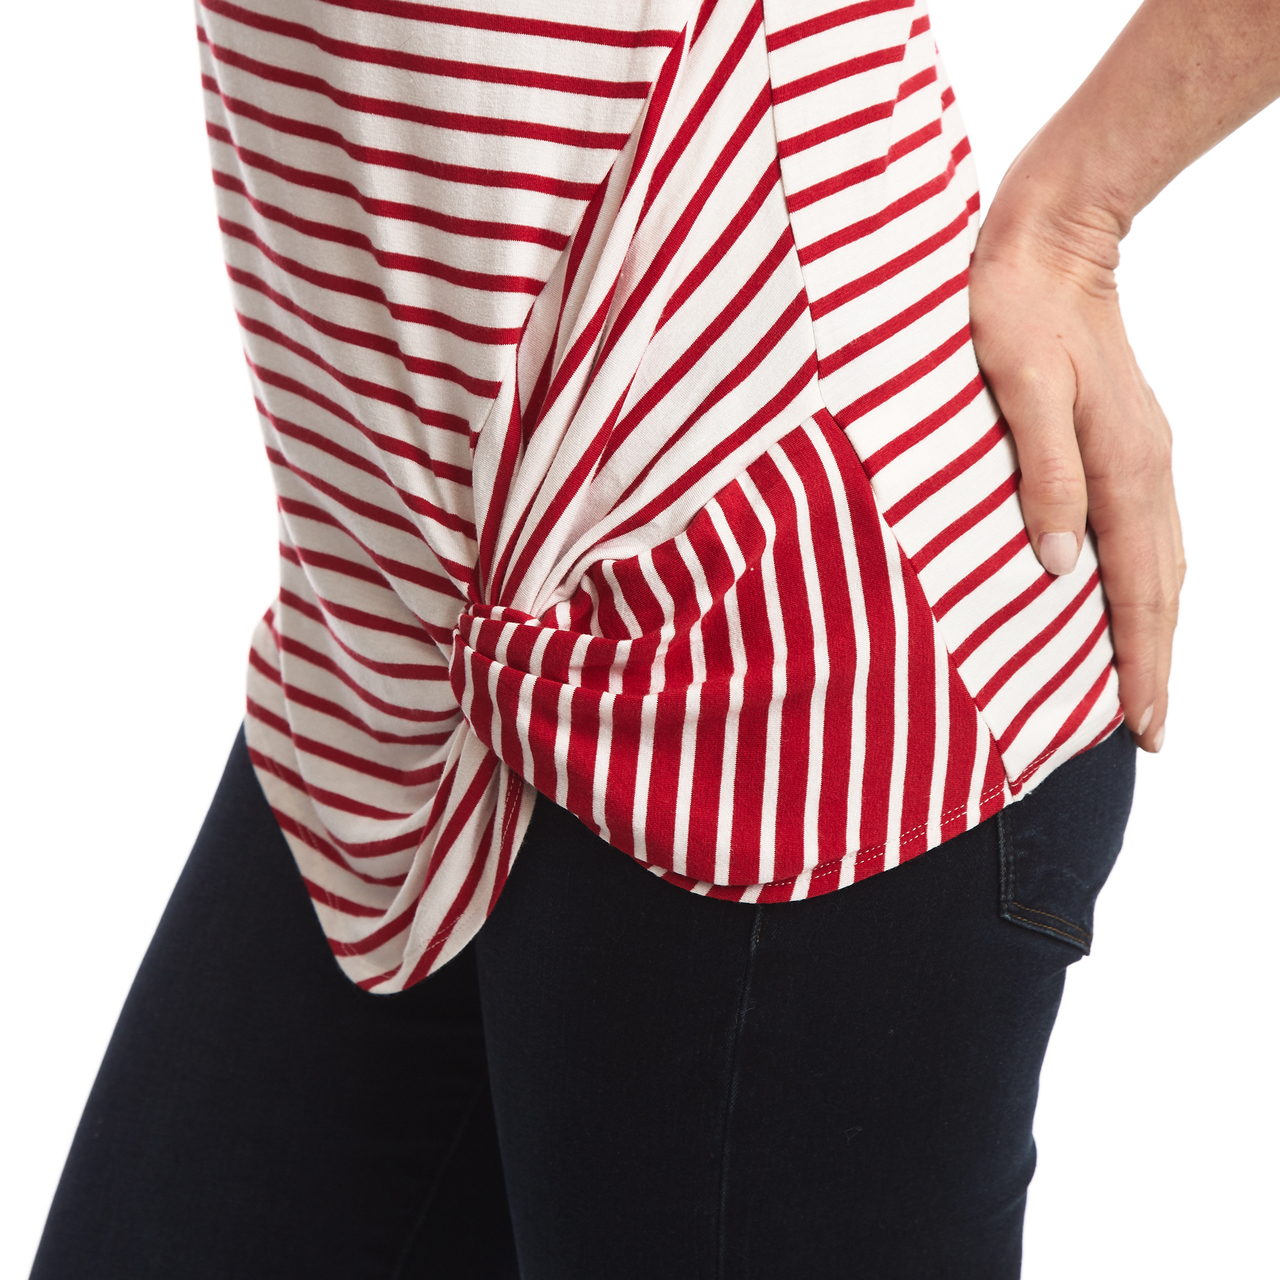 Stripe Top with Contrasting Twist in Red and White